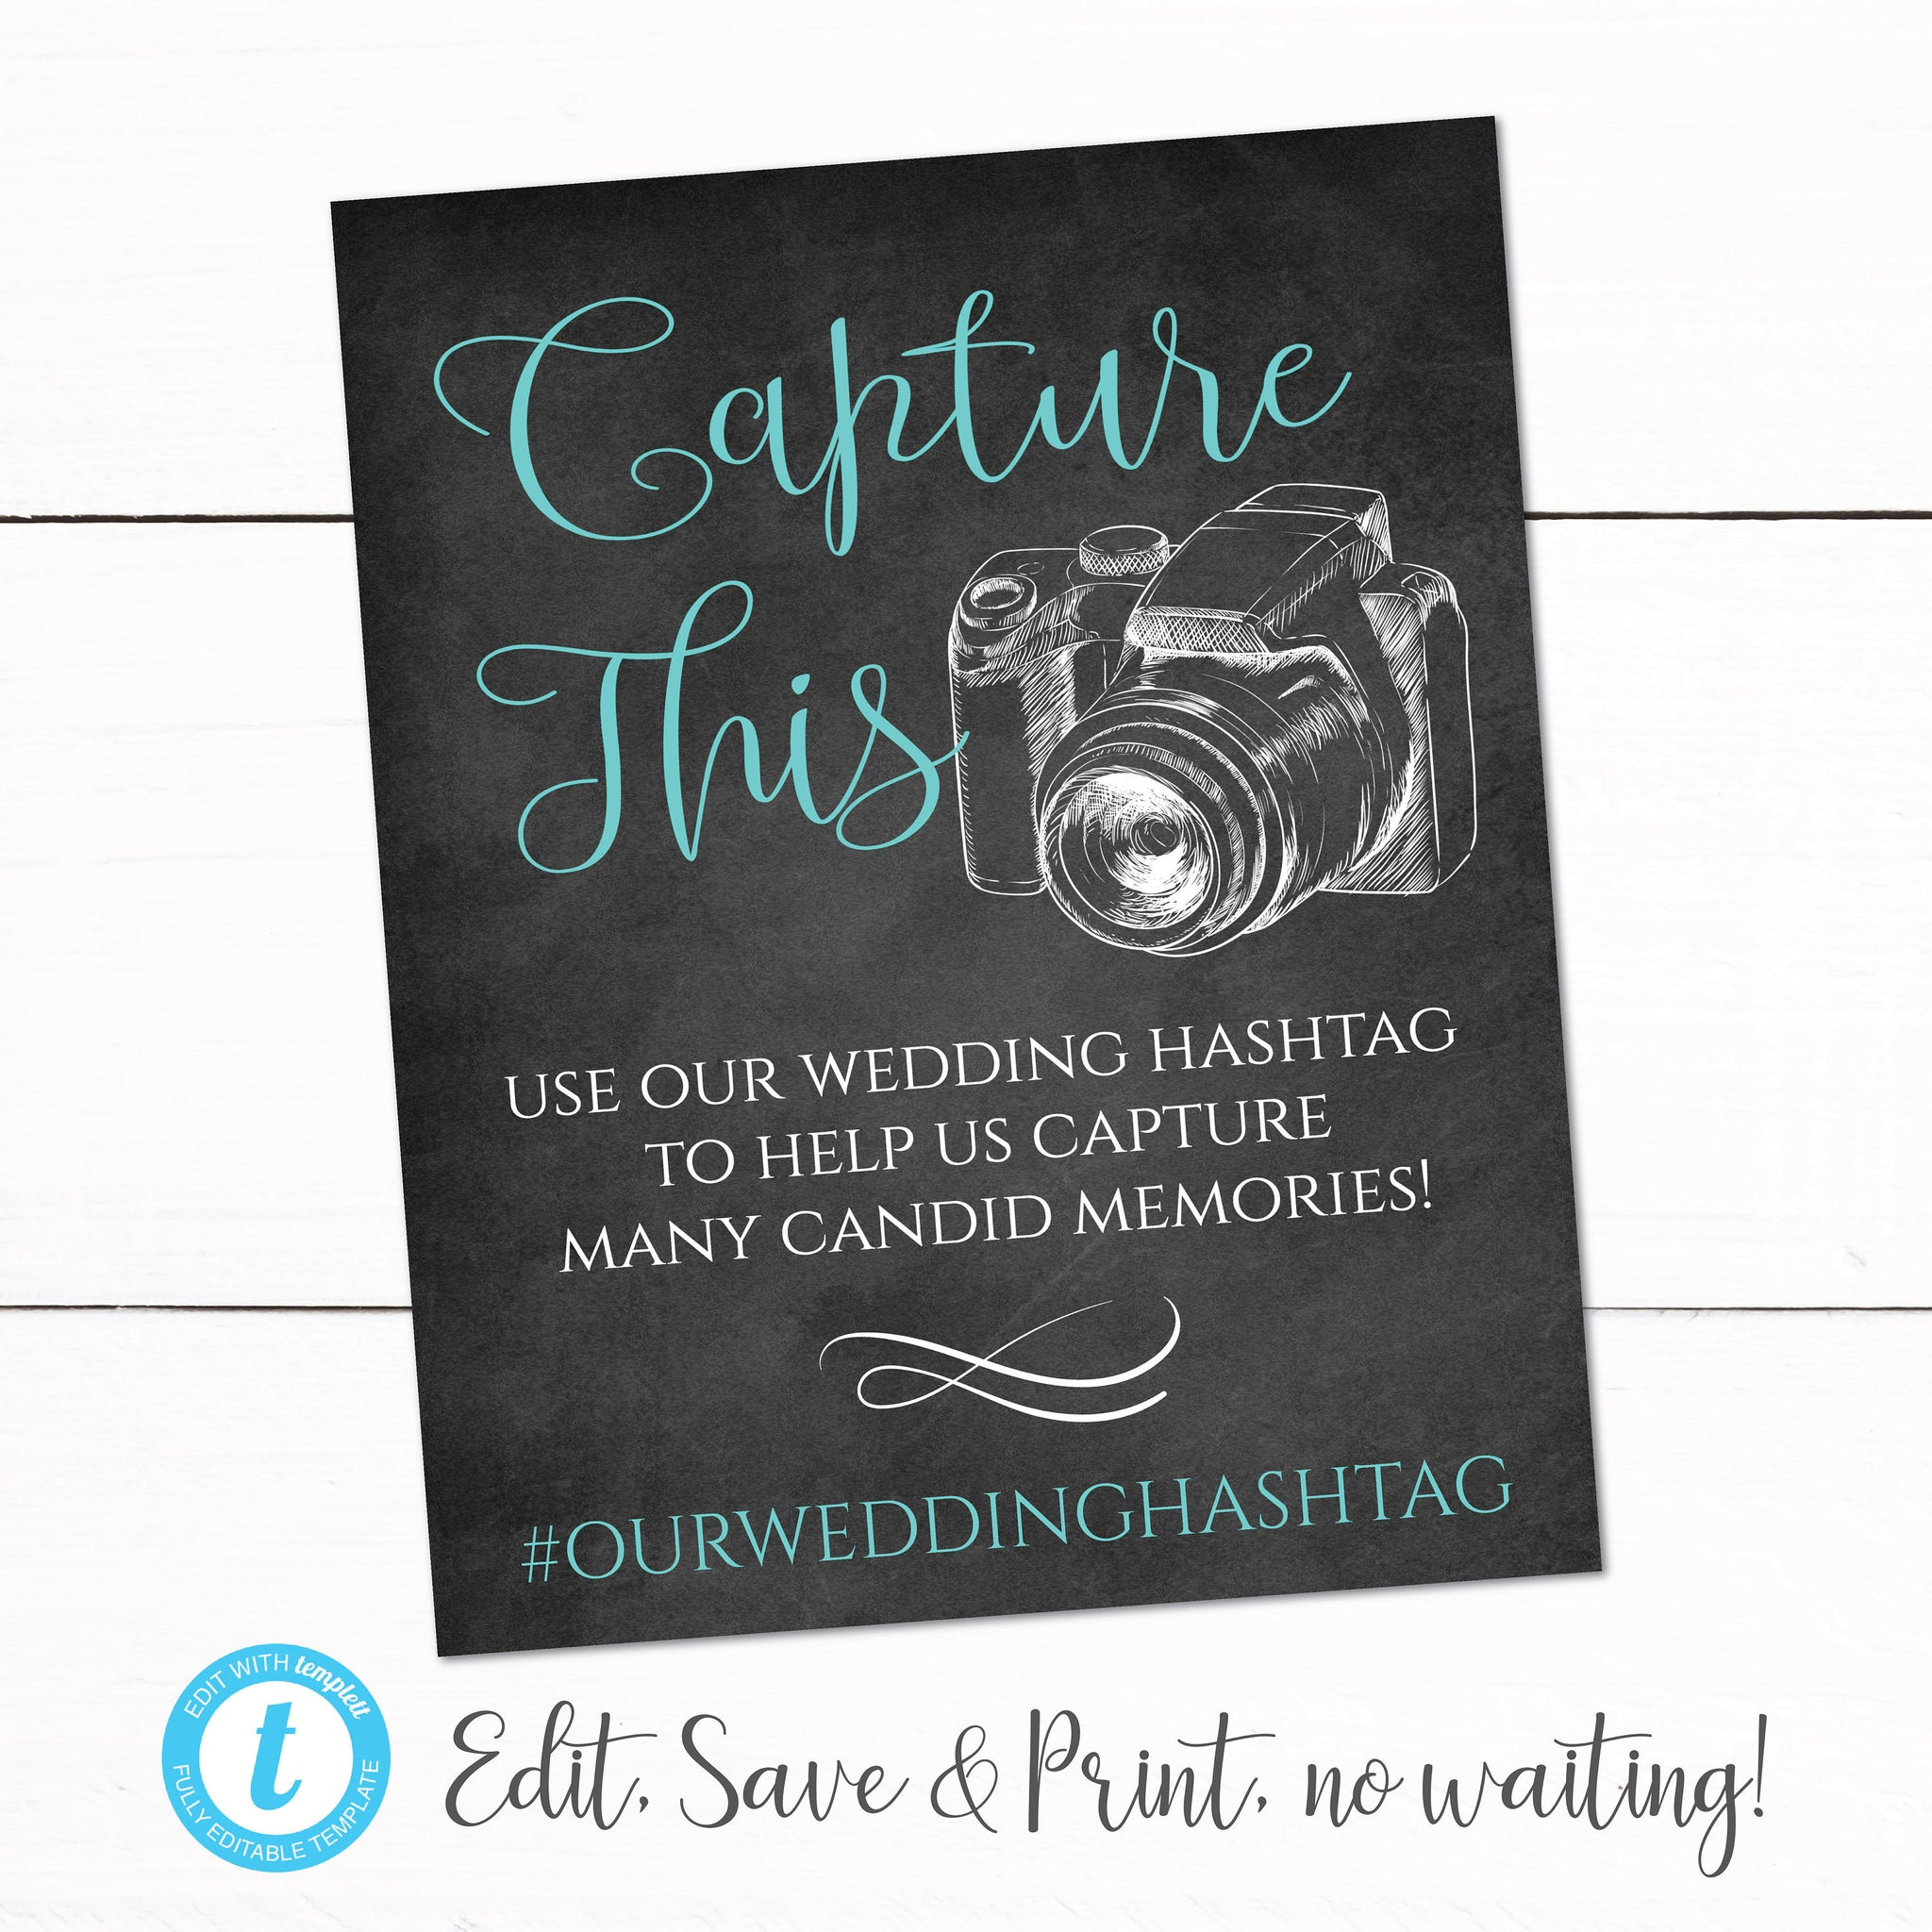 Wedding Hashtag Chalkboard Sign - Anniversary Hashtag Sign - Party Hashtag Sign Camera - Oh Snap Hashtag Sign - Wedding Event Welcome Sign